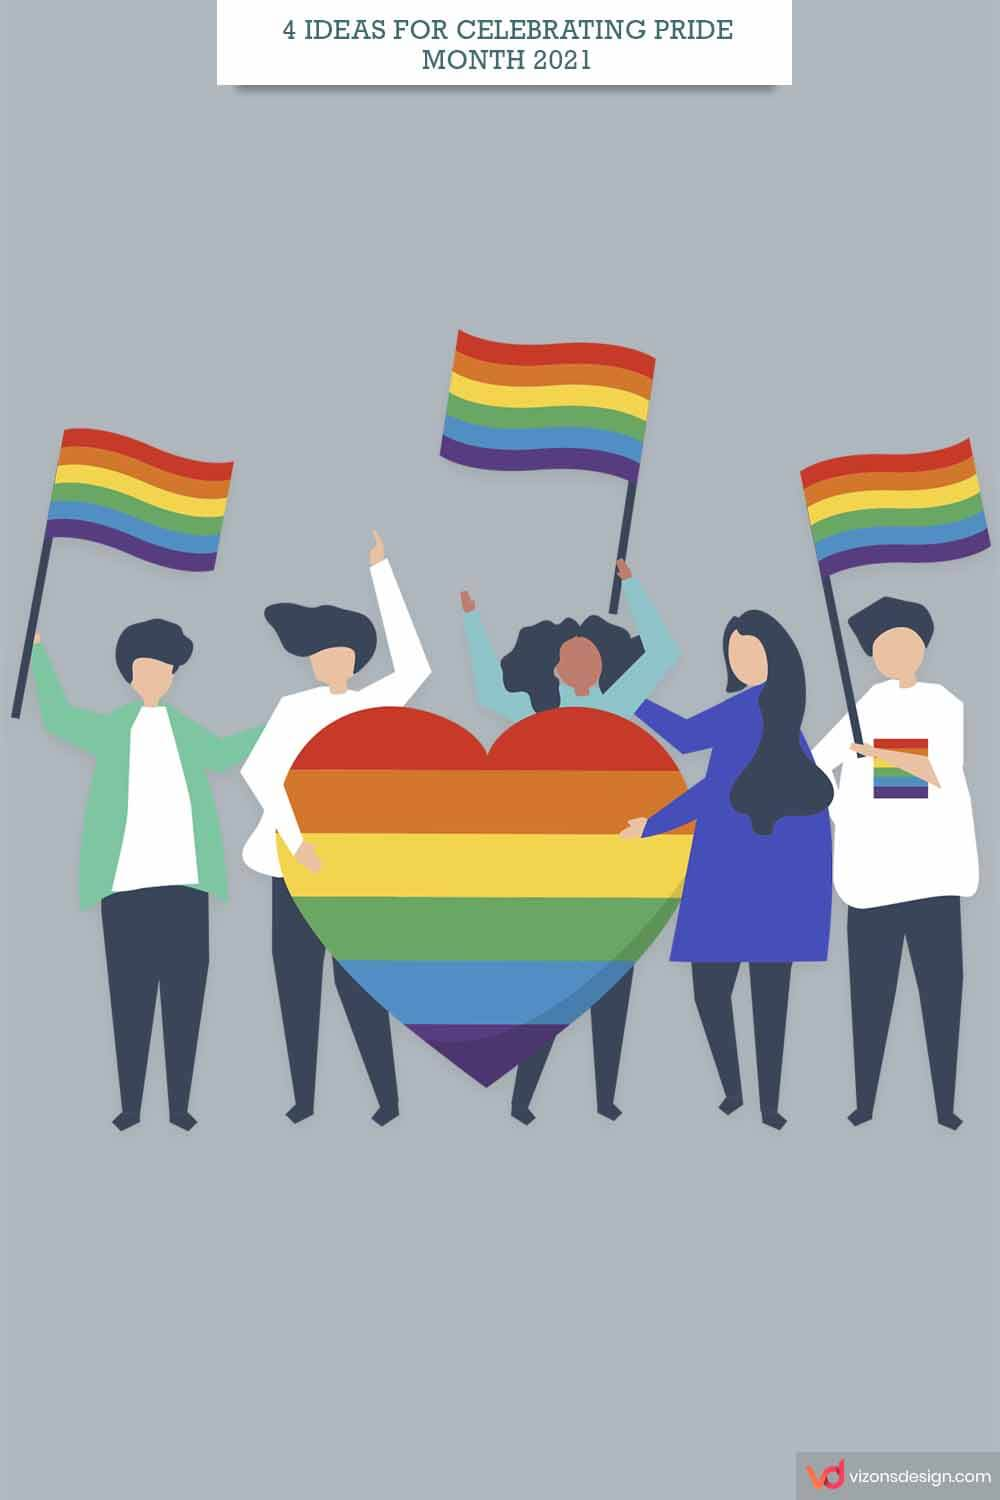 4 Ideas For Celebrating Pride Month 2021